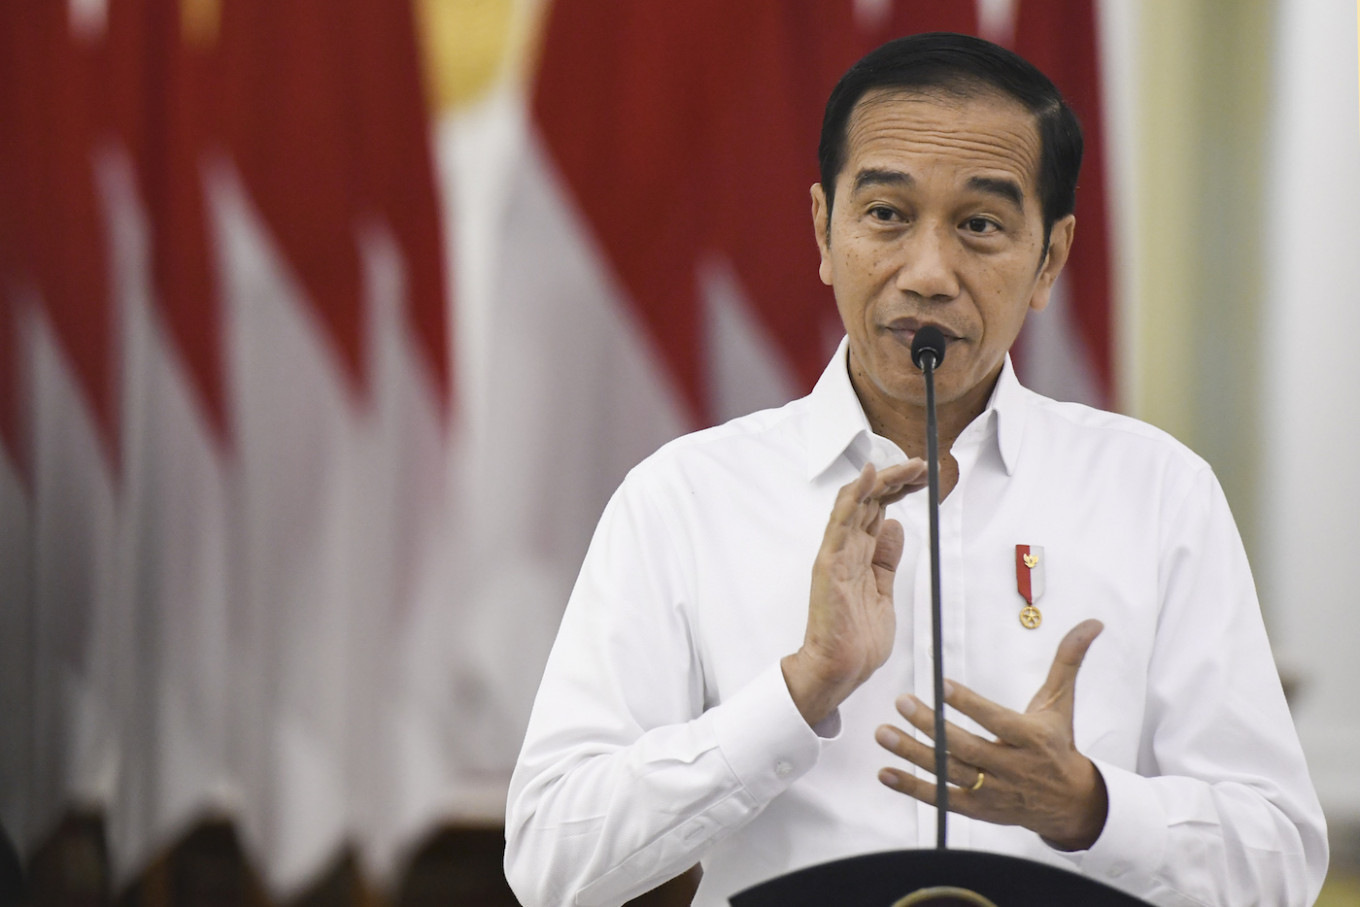 No lockdown for Indonesia, Jokowi insists as COVID-19 cases continue to rise